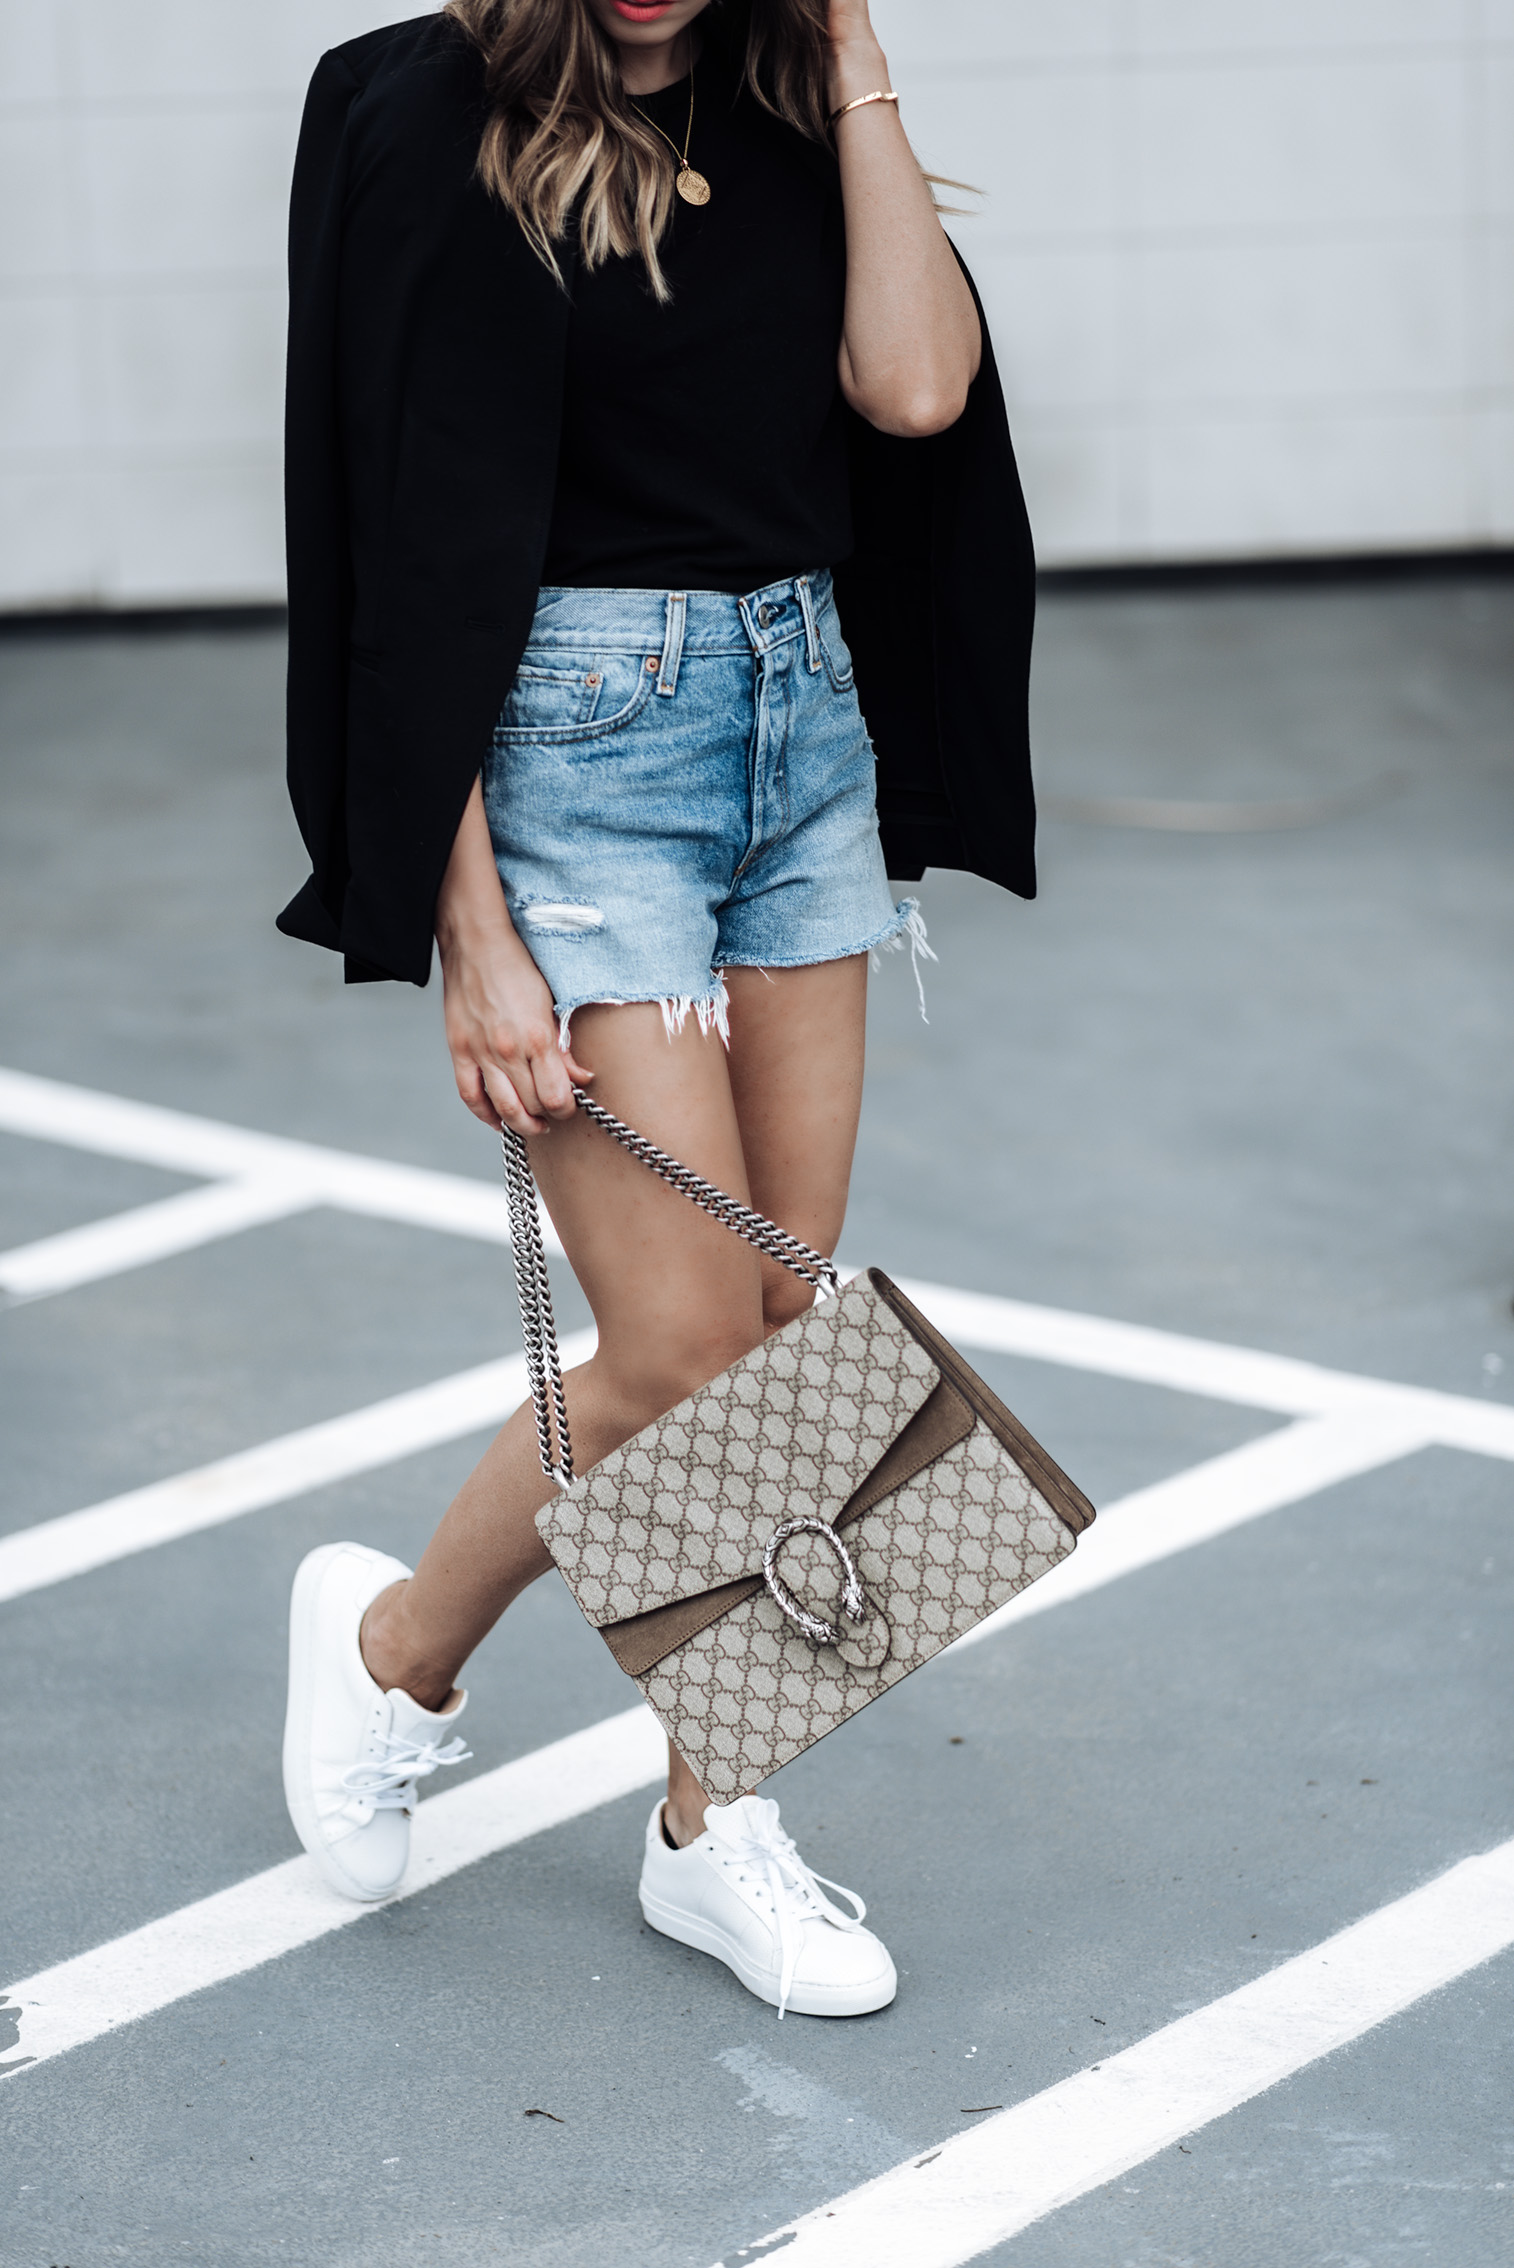 Tiffany Jais Houston fashion and lifestyle blogger   Fall must have pieces with Banana Republic, click to shop the look   Sneaker fashion, Longline Blazer   Basic Black Tee   Greats sneakers   Parker Distressed Denim Shorts   Marie Pendant